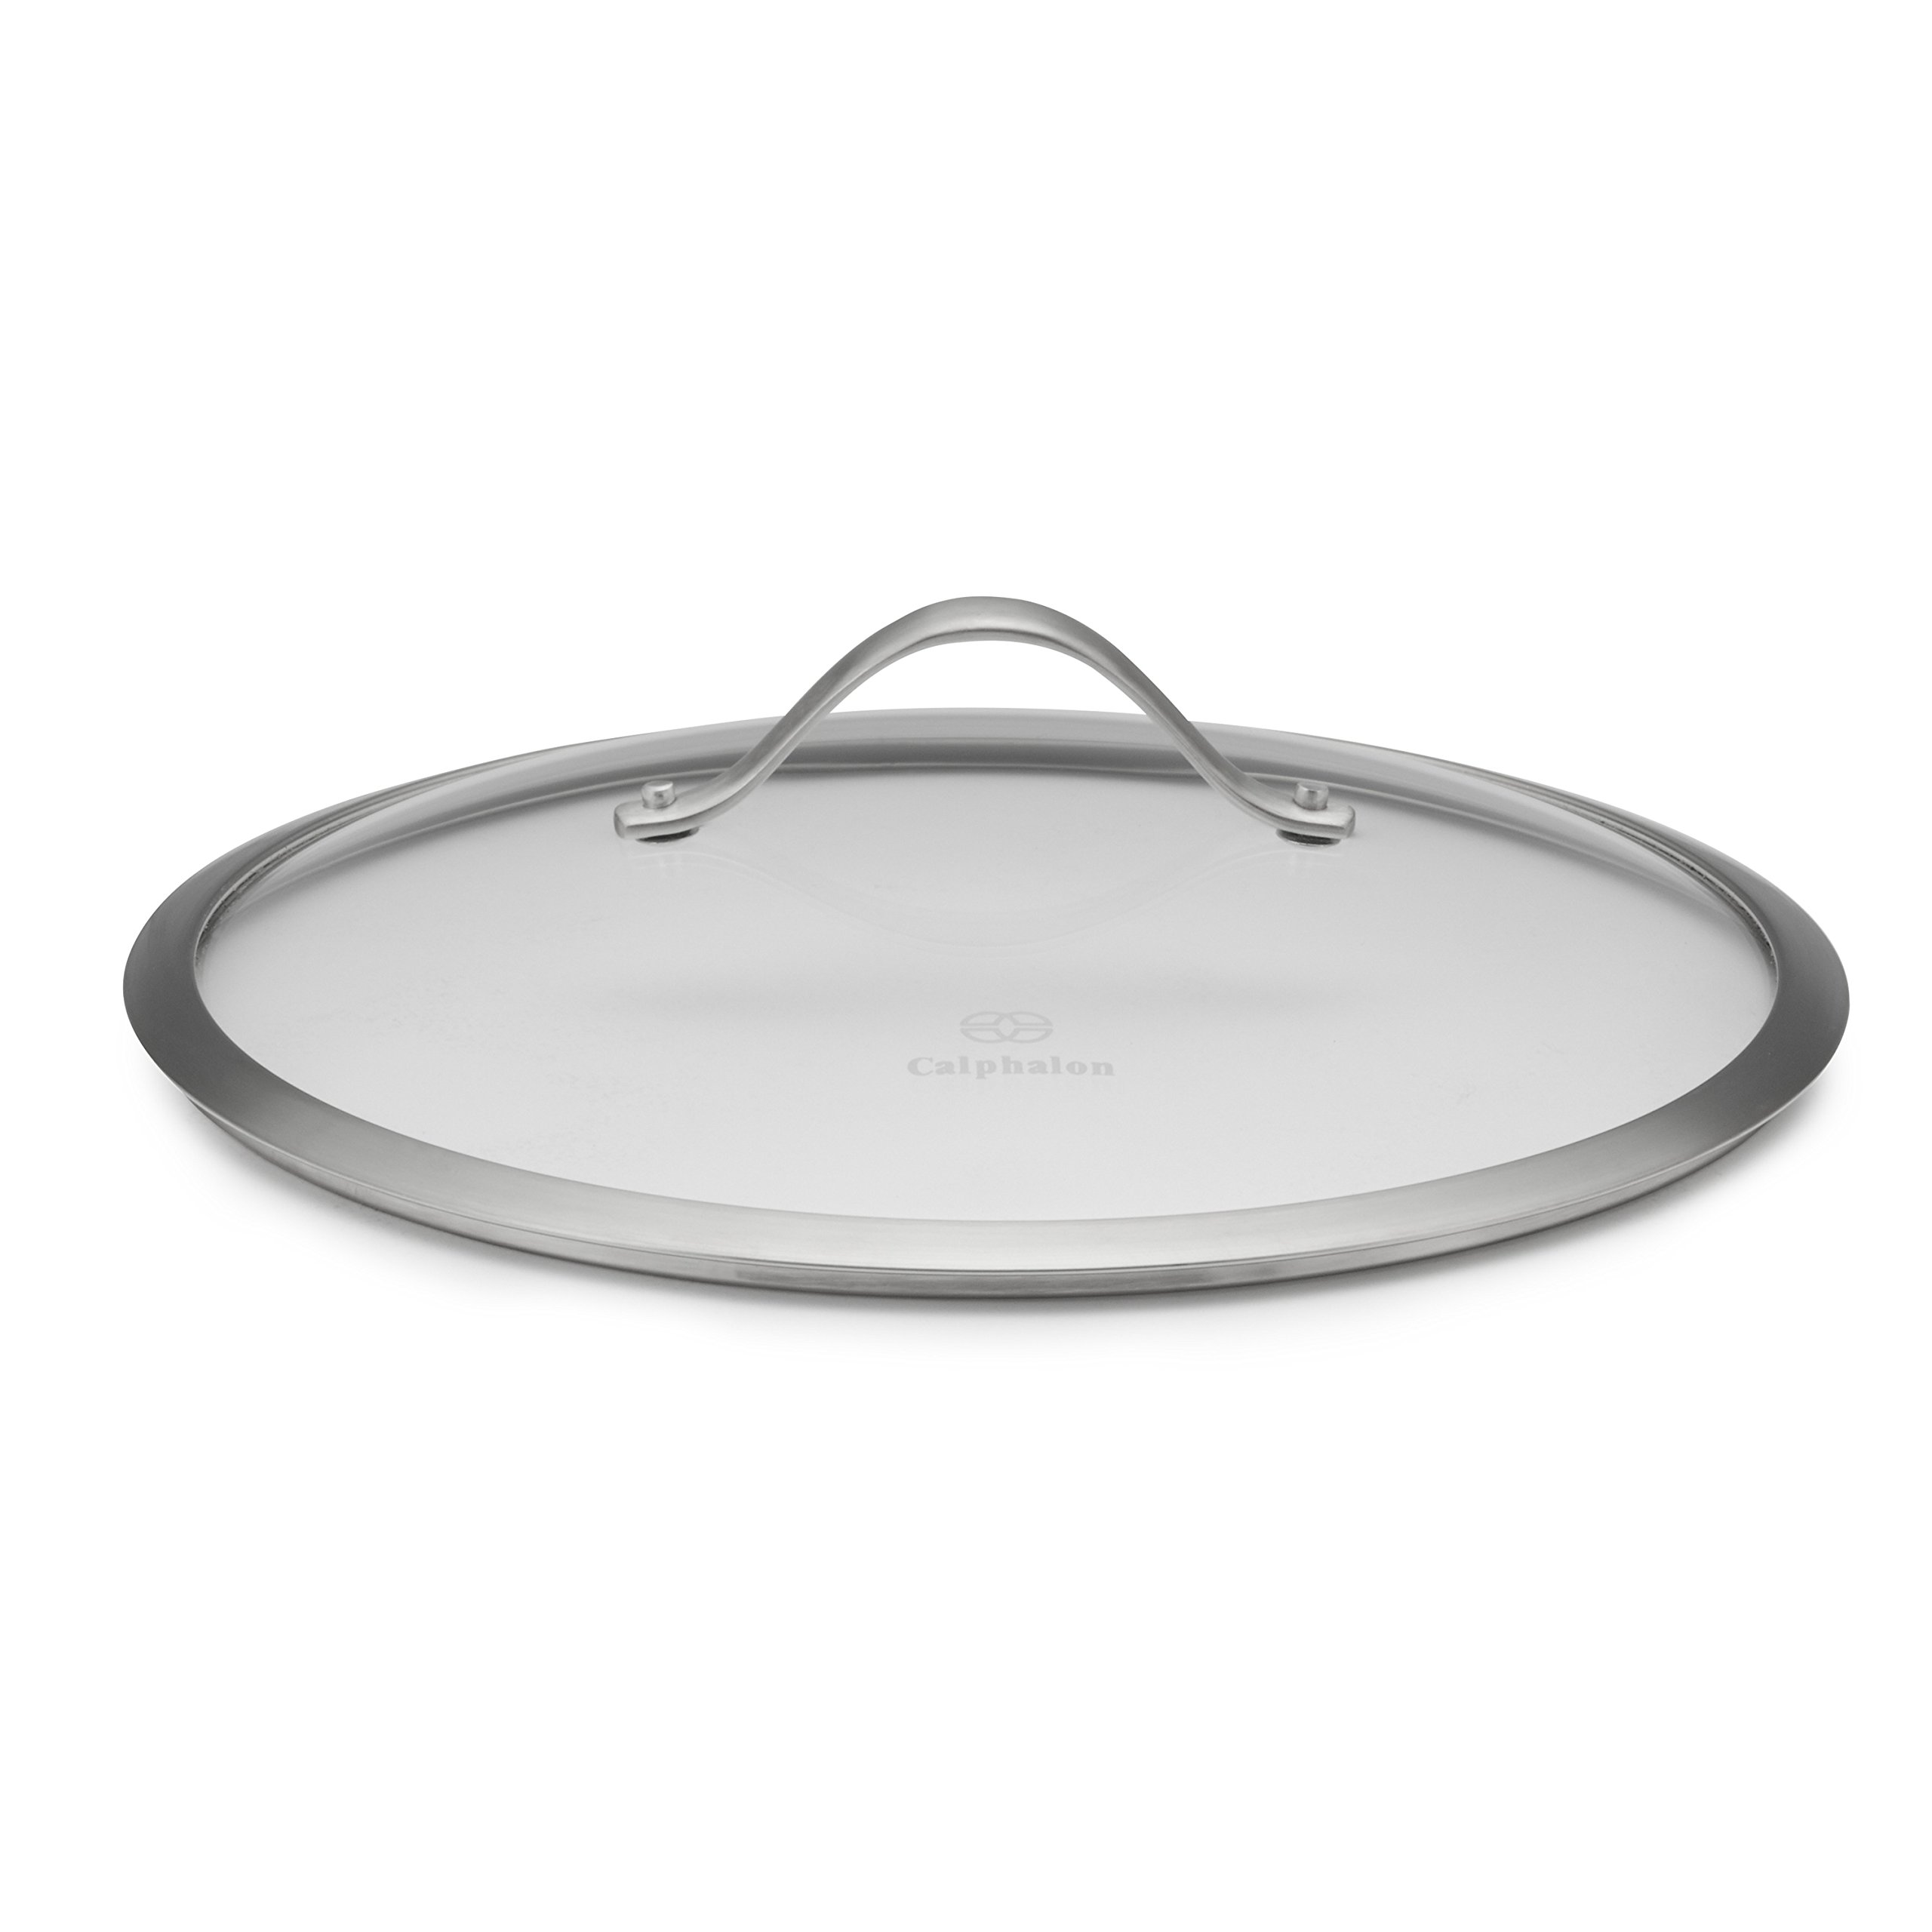 Calphalon Contemporary Hard-Anodized Aluminum Nonstick Cookware, Lid, 12-inch, Glass by Calphalon (Image #1)